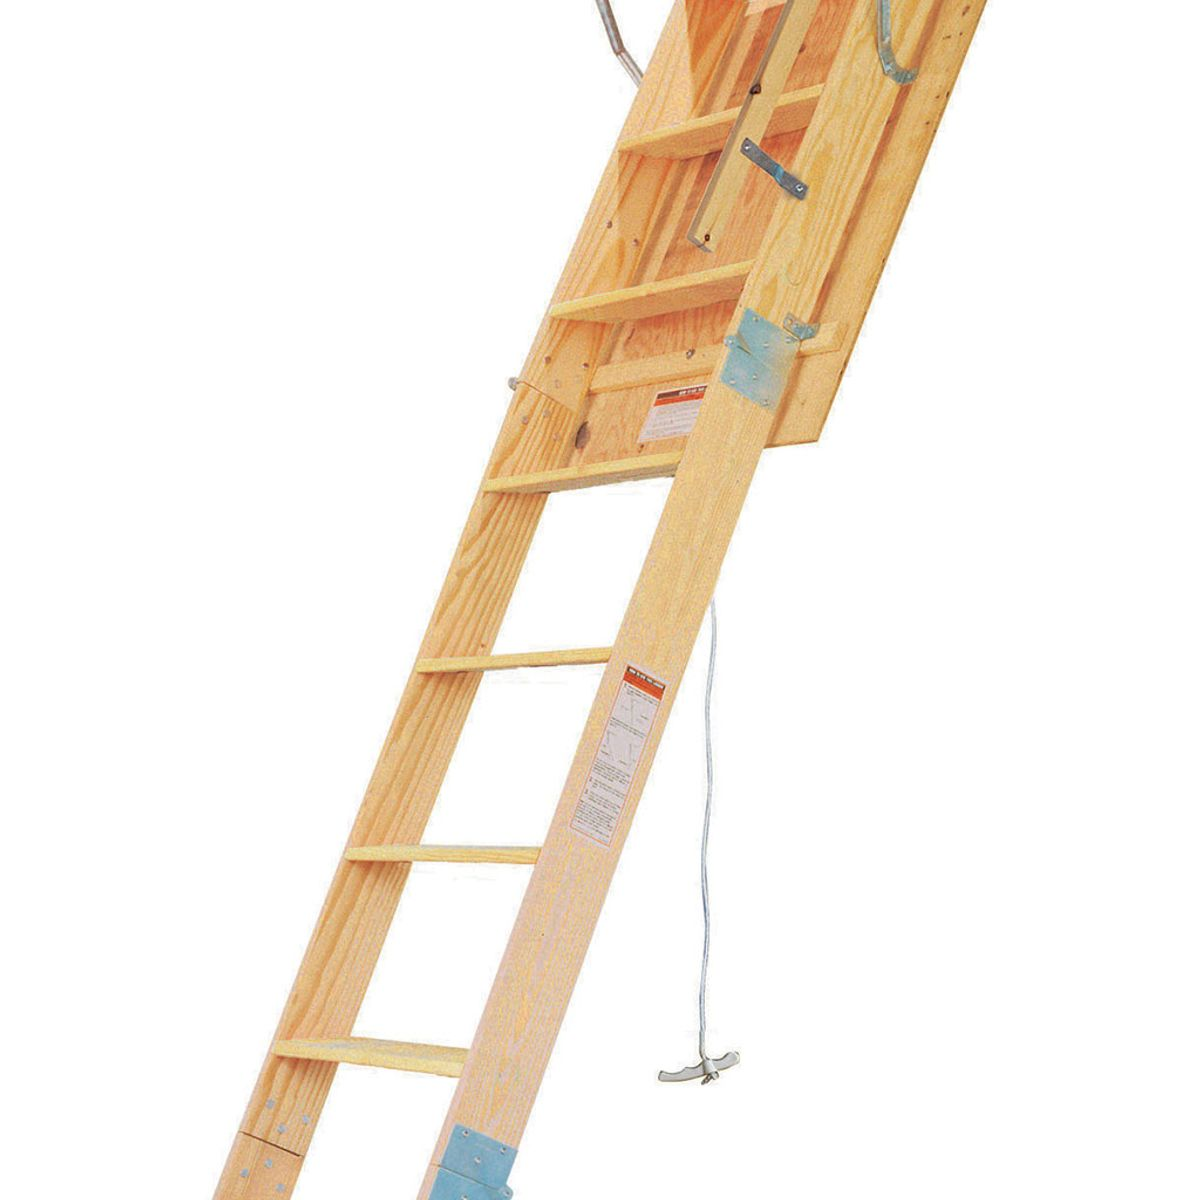 Platform Ladder Bunnings Wh3008 Attic Ladders Werner Us